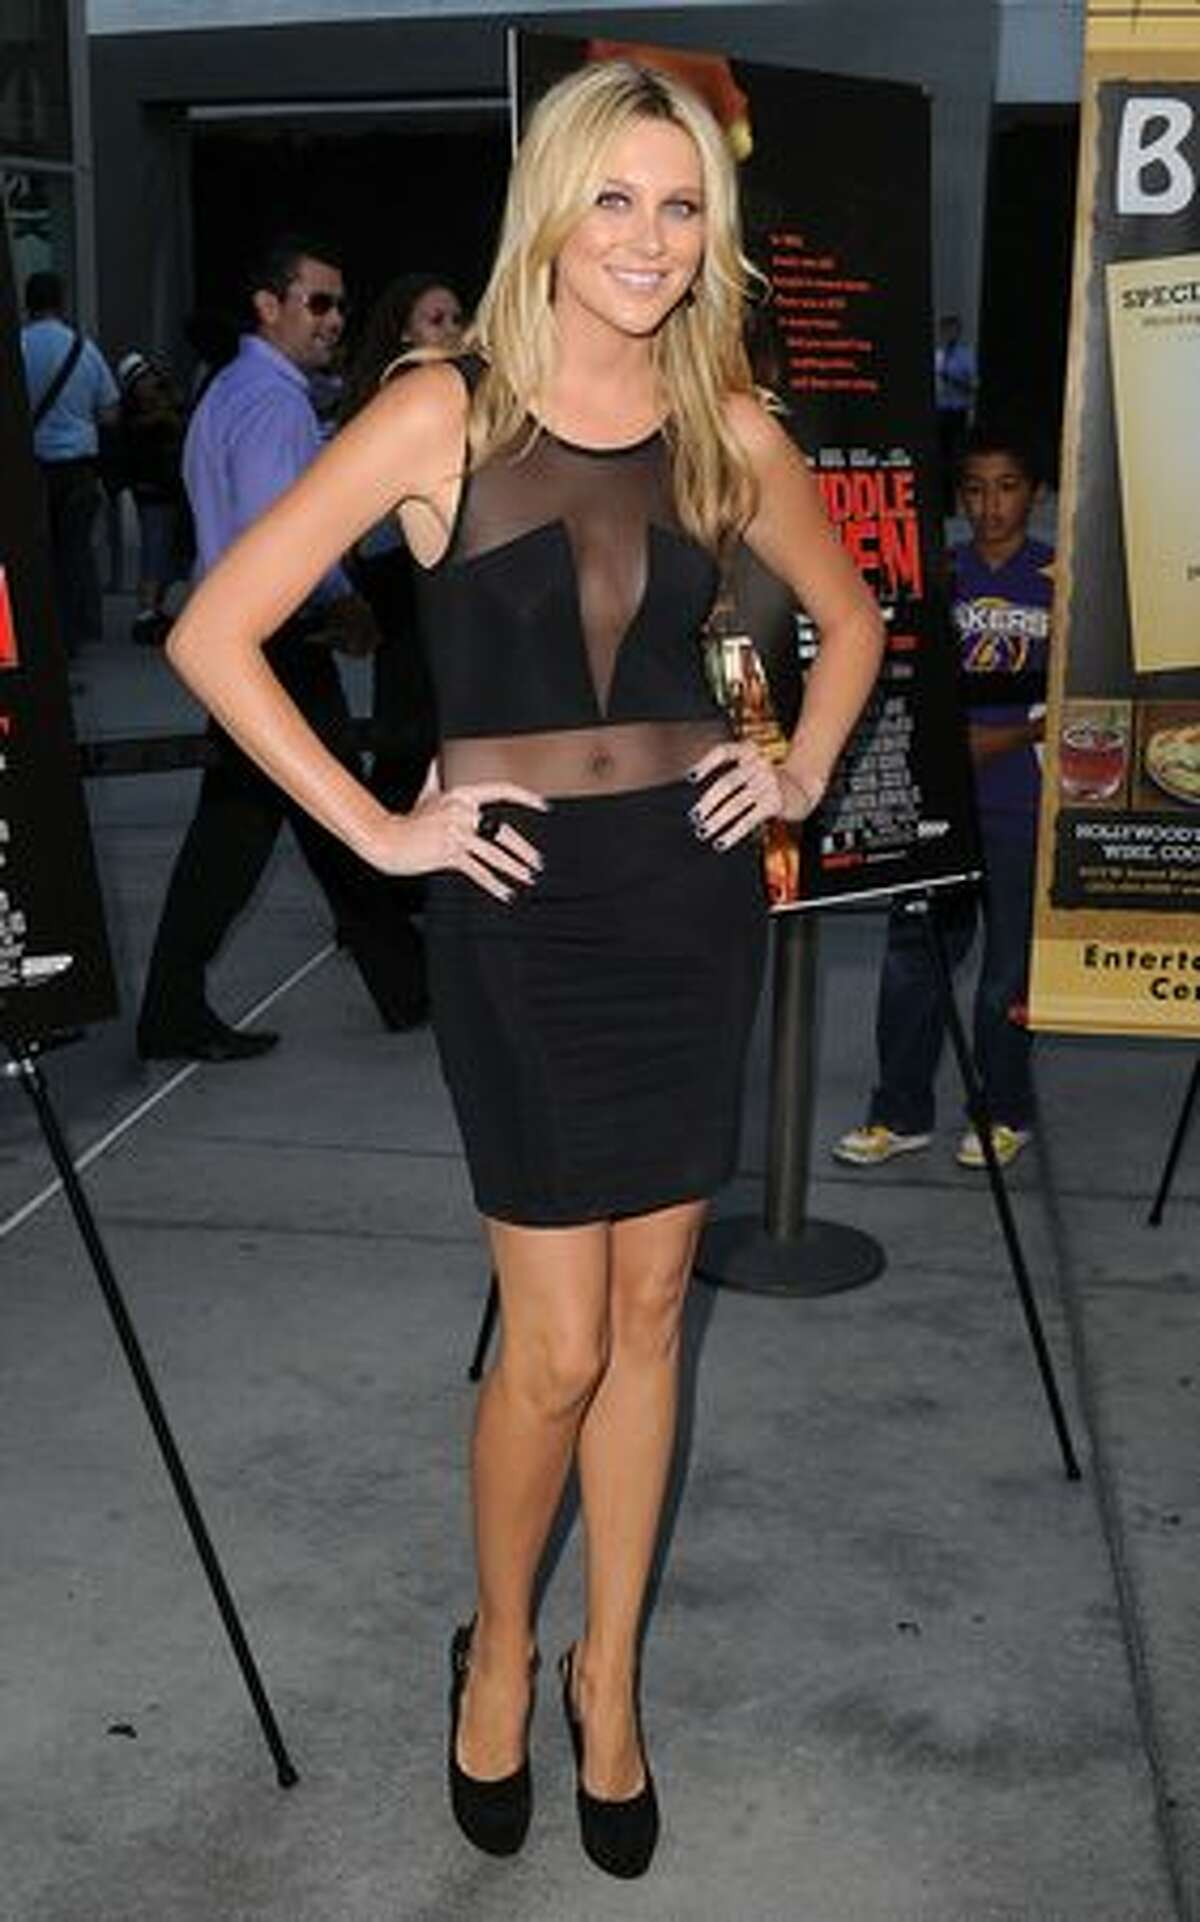 Actress Stephanie Pratt attends the Los Angeles premiere of